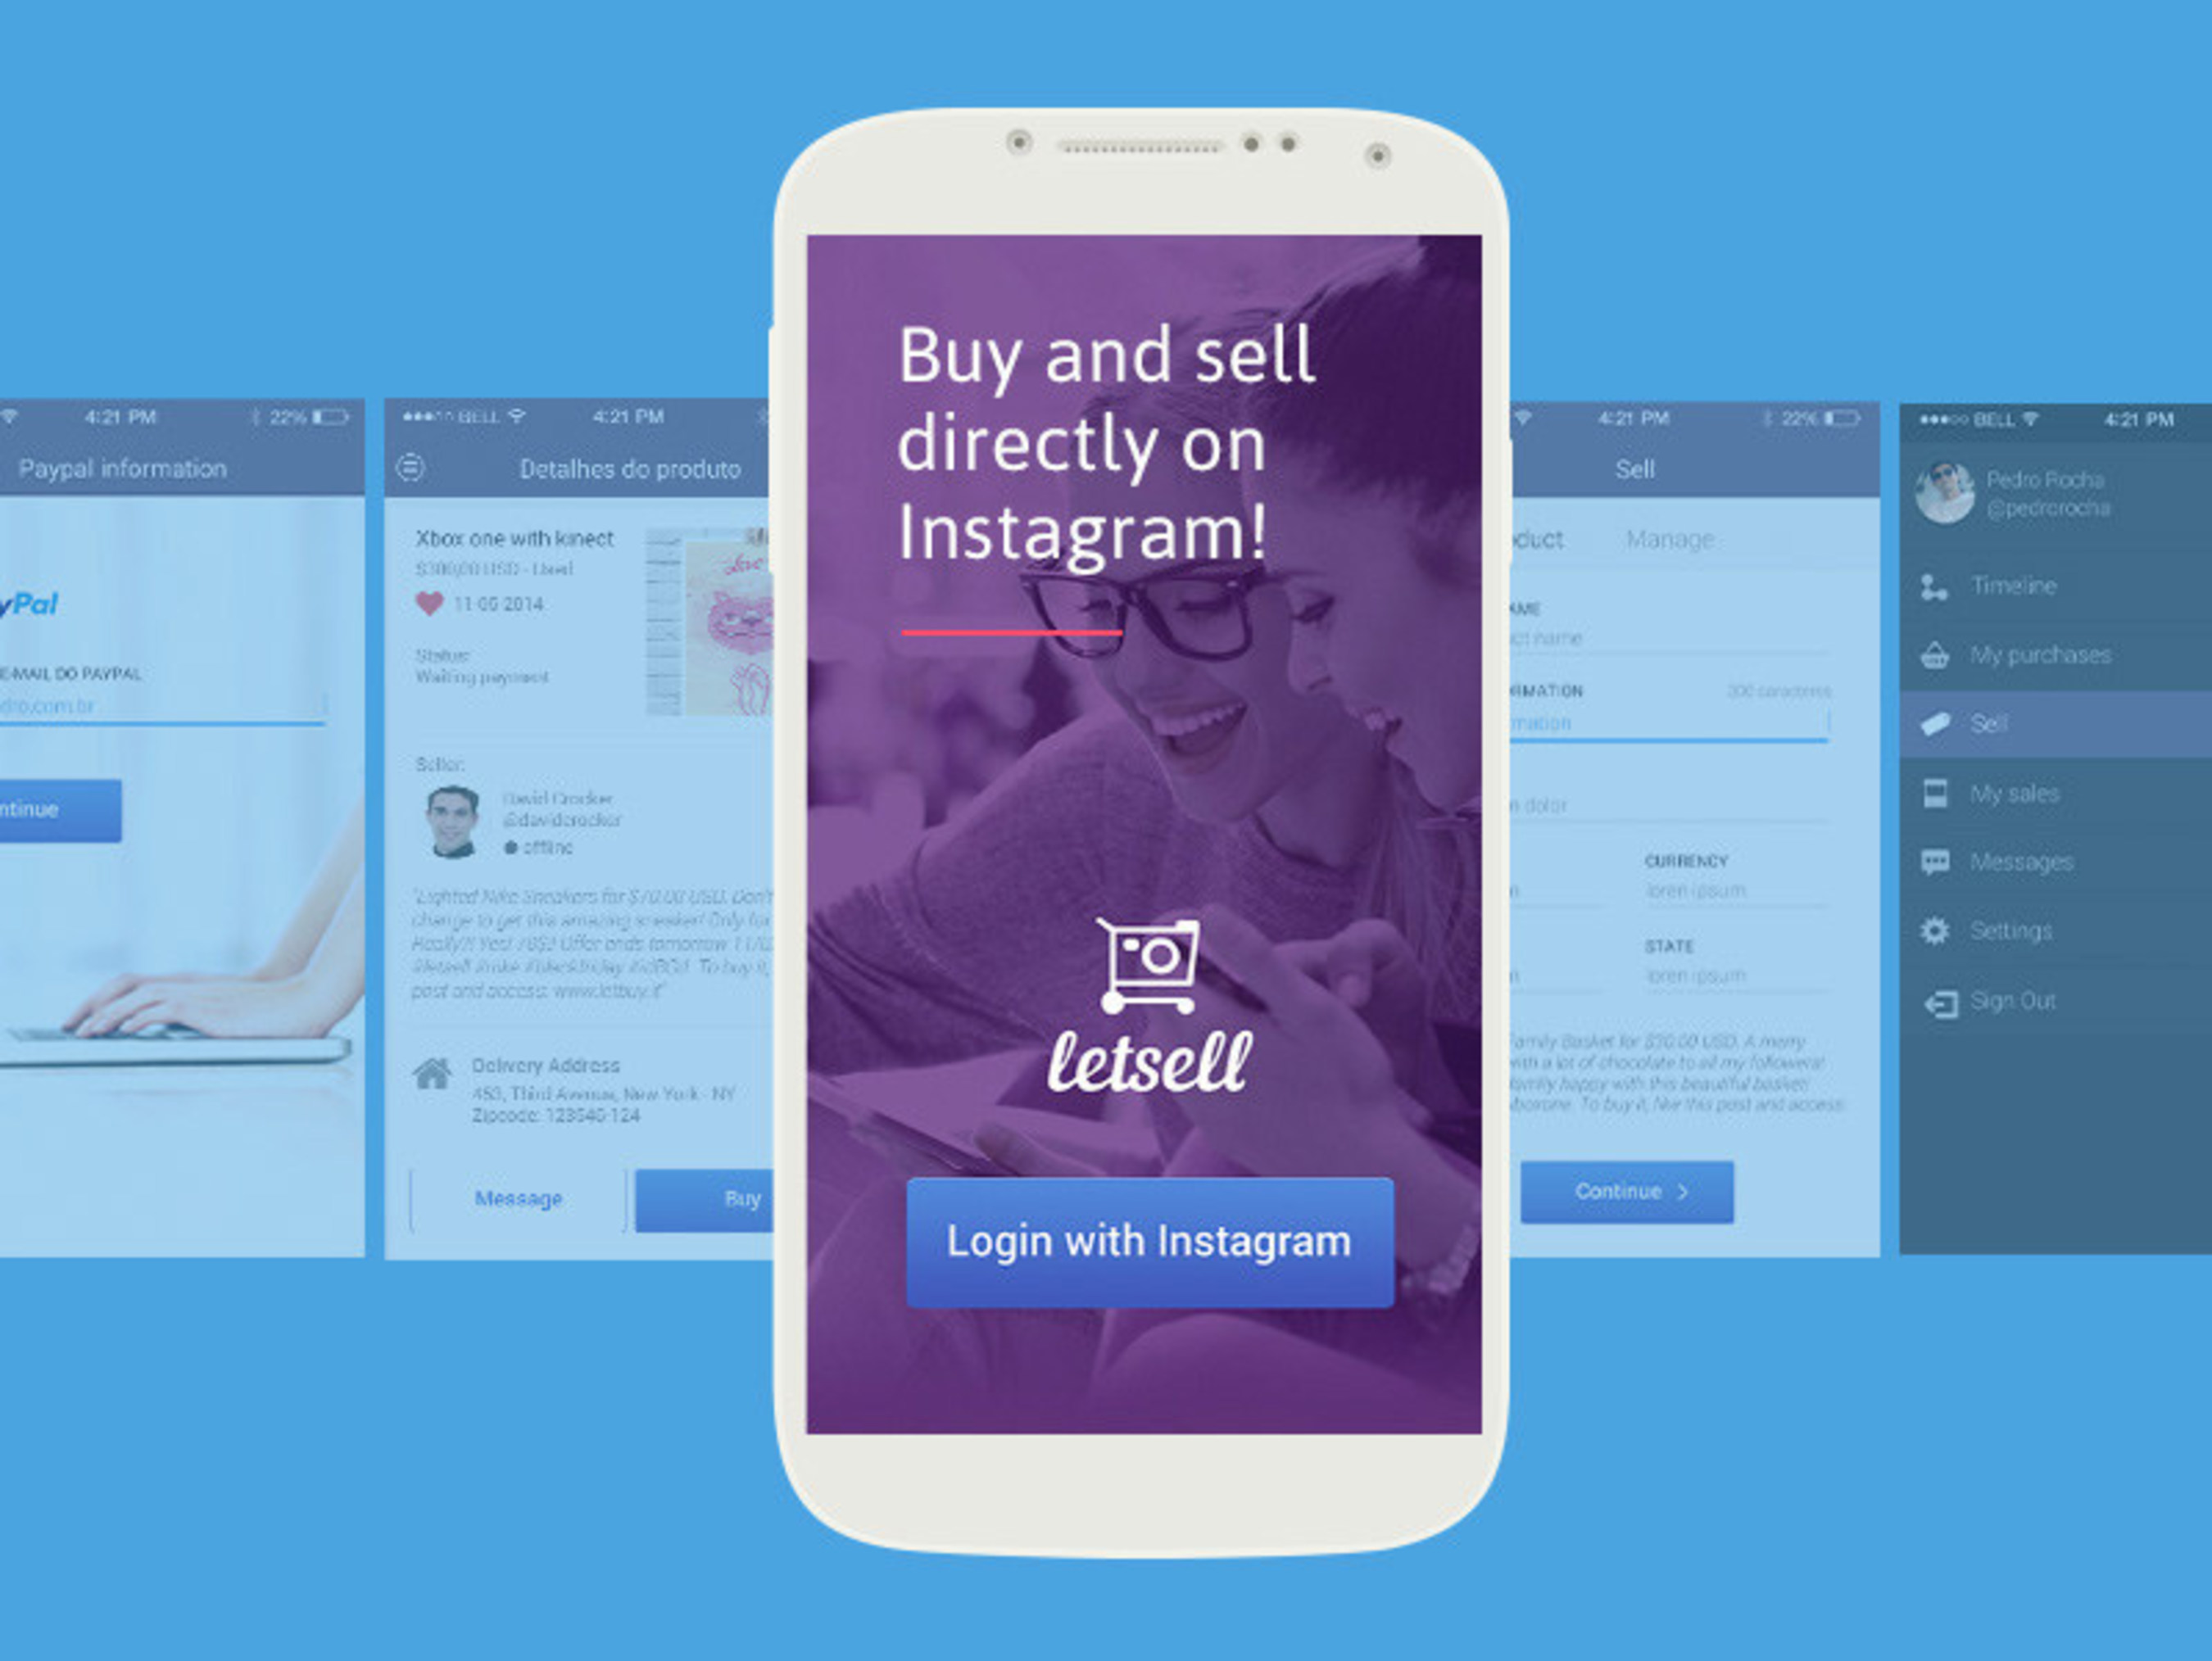 Gerencianet prepares release of app for buying and selling using Instagram